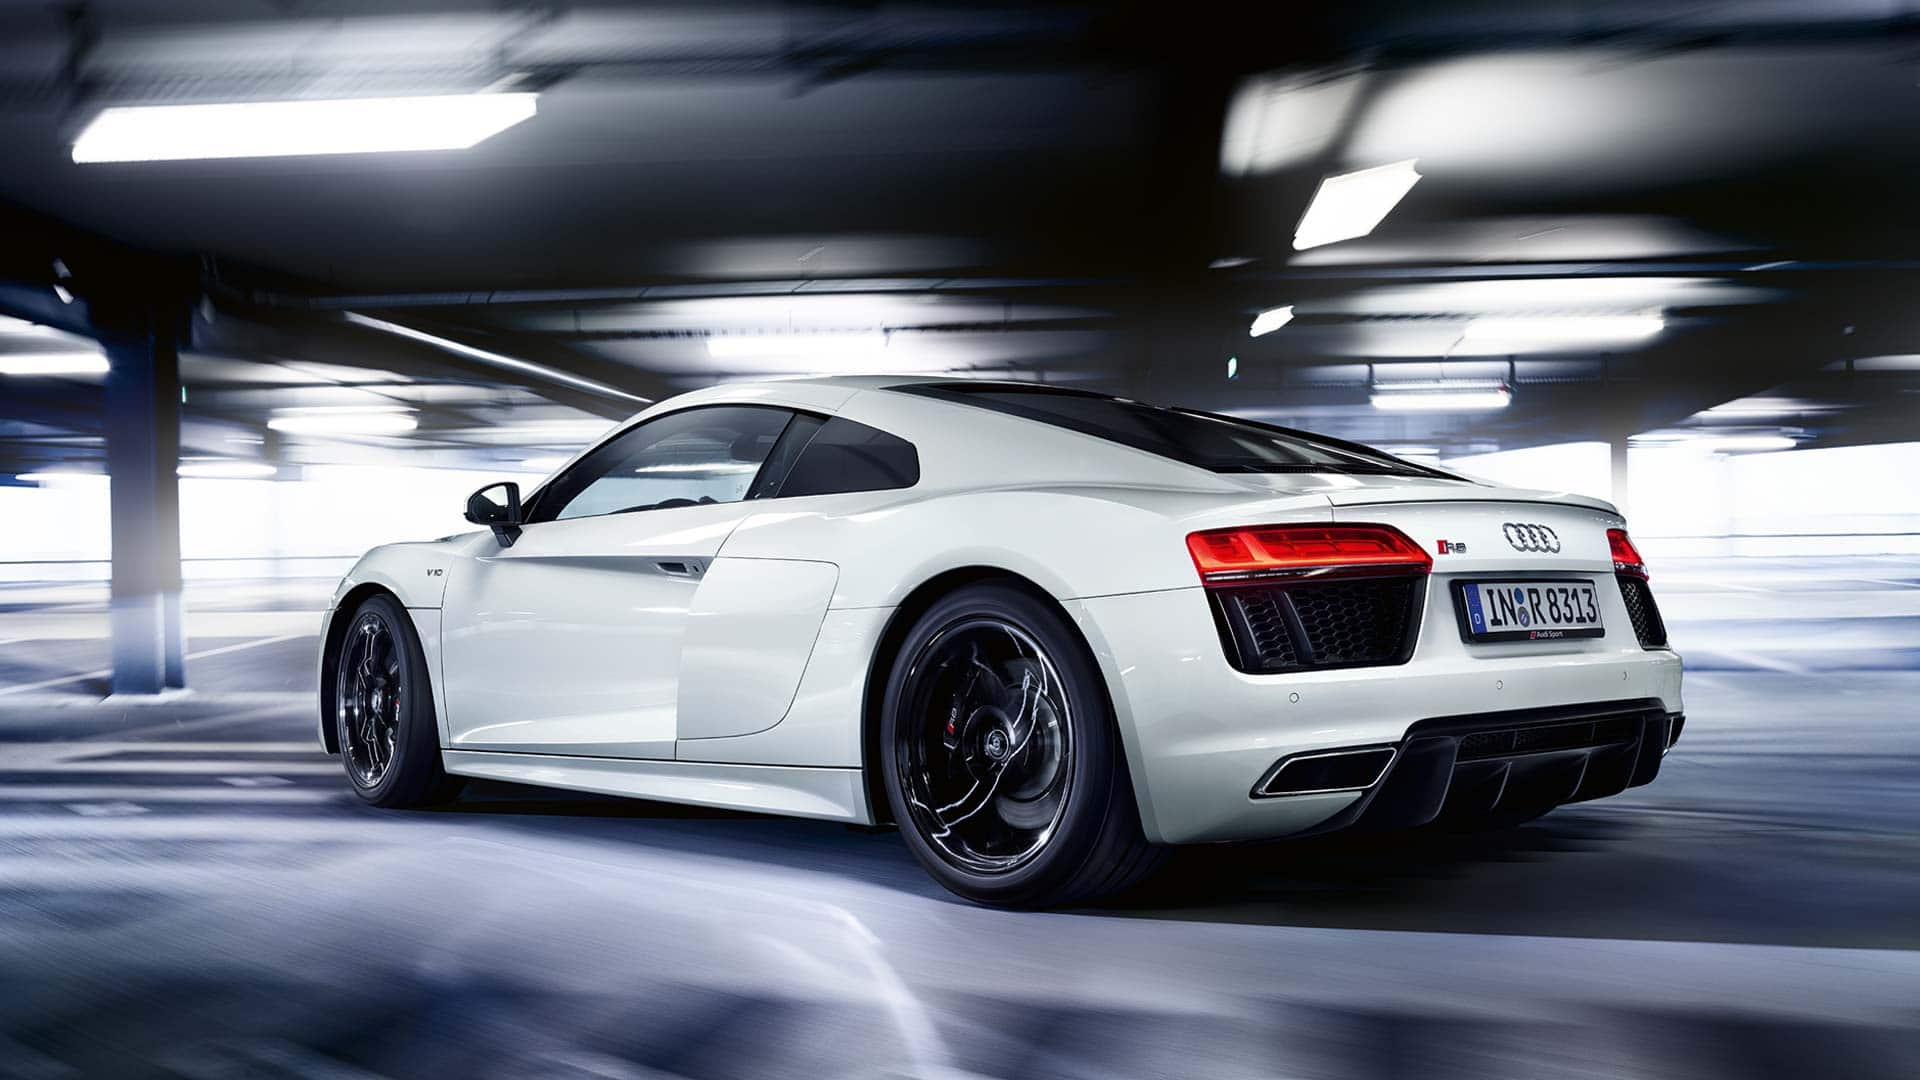 Audi Sports Car Wallpaper Audi R8 Rws Limited Edition Audi Australia Gt R8 Gt Audi